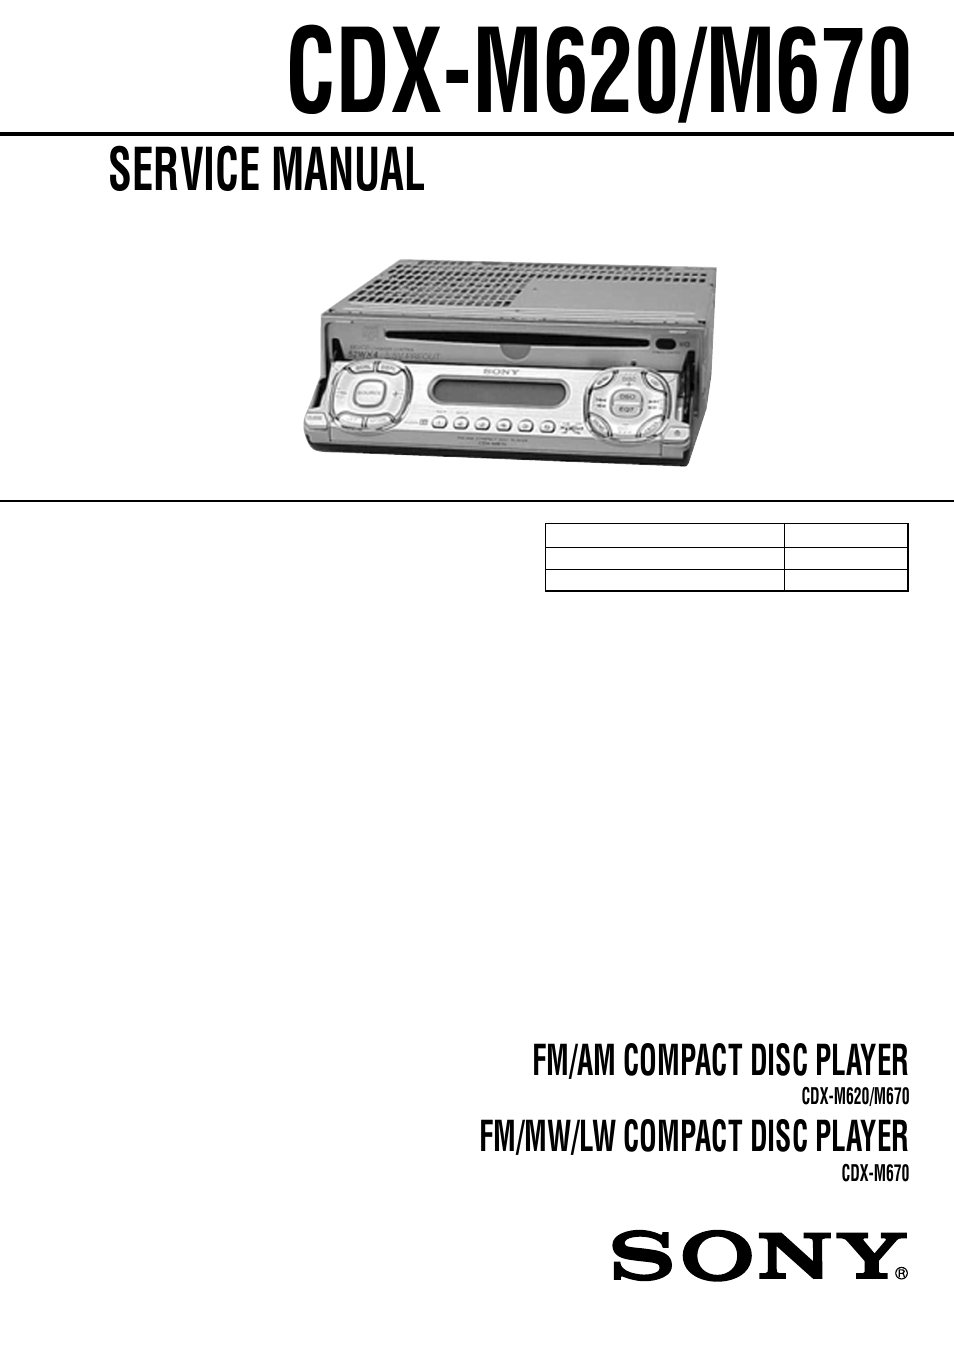 sony ericsson cdx-m620 user manual | 78 pages  manuals directory